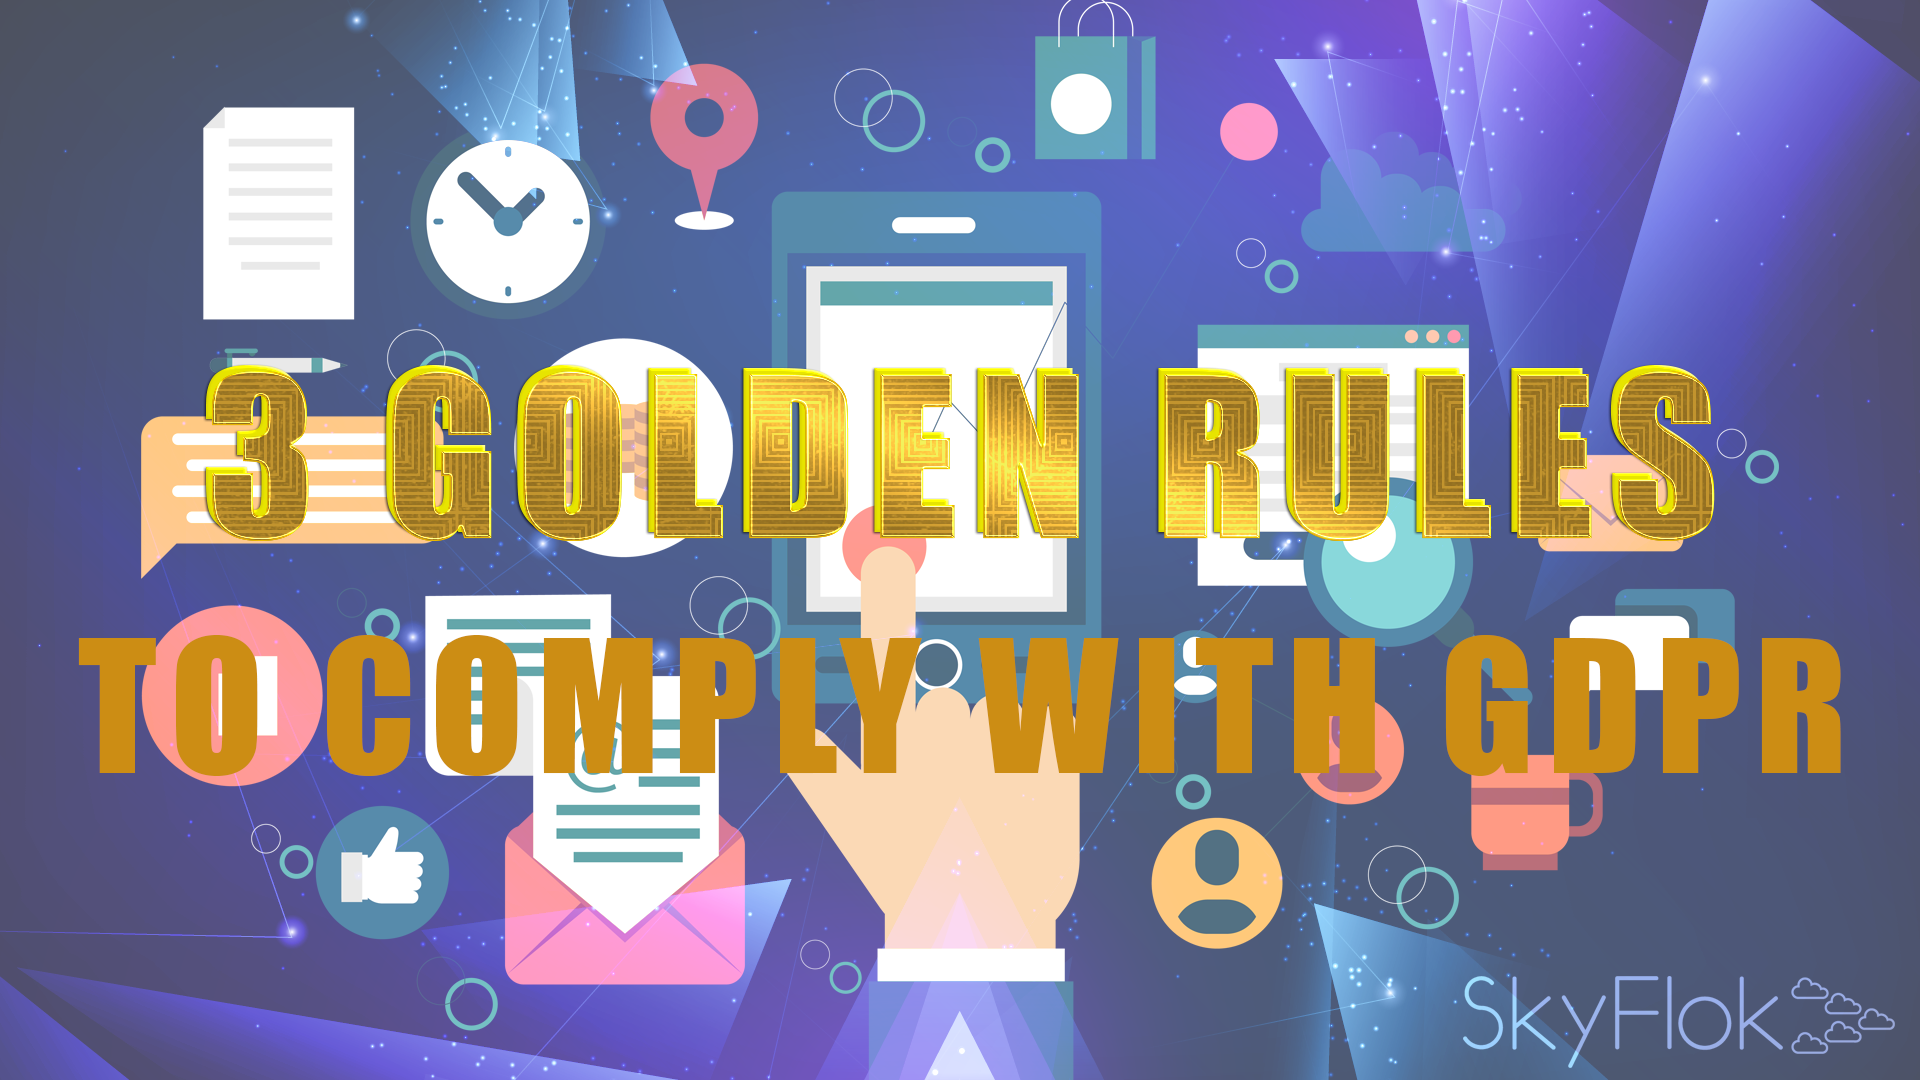 IT Management: The 3 Golden Rules to Comply with GDPR